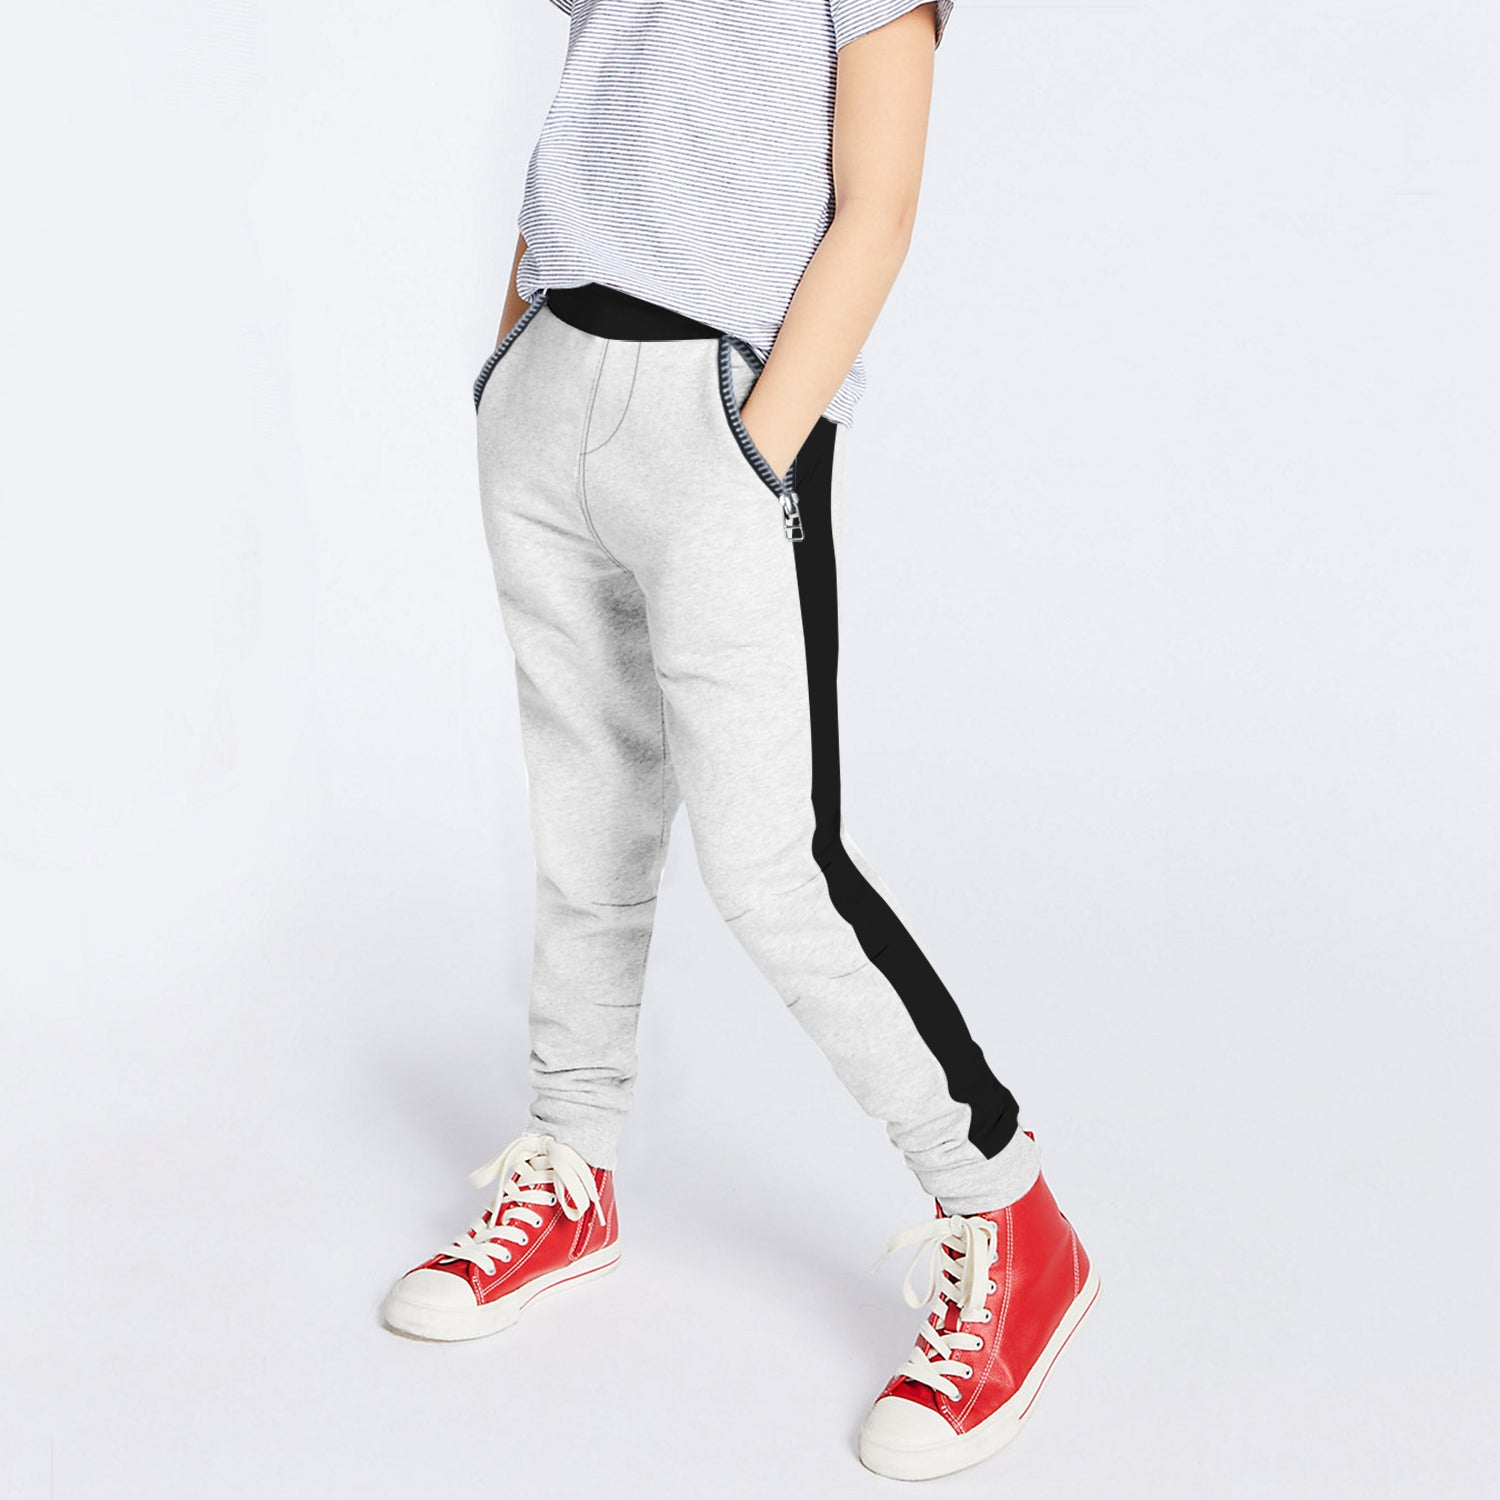 Next Fleece Jogger Trouser For Kids-Off White Melange with Black Panel-BE10011